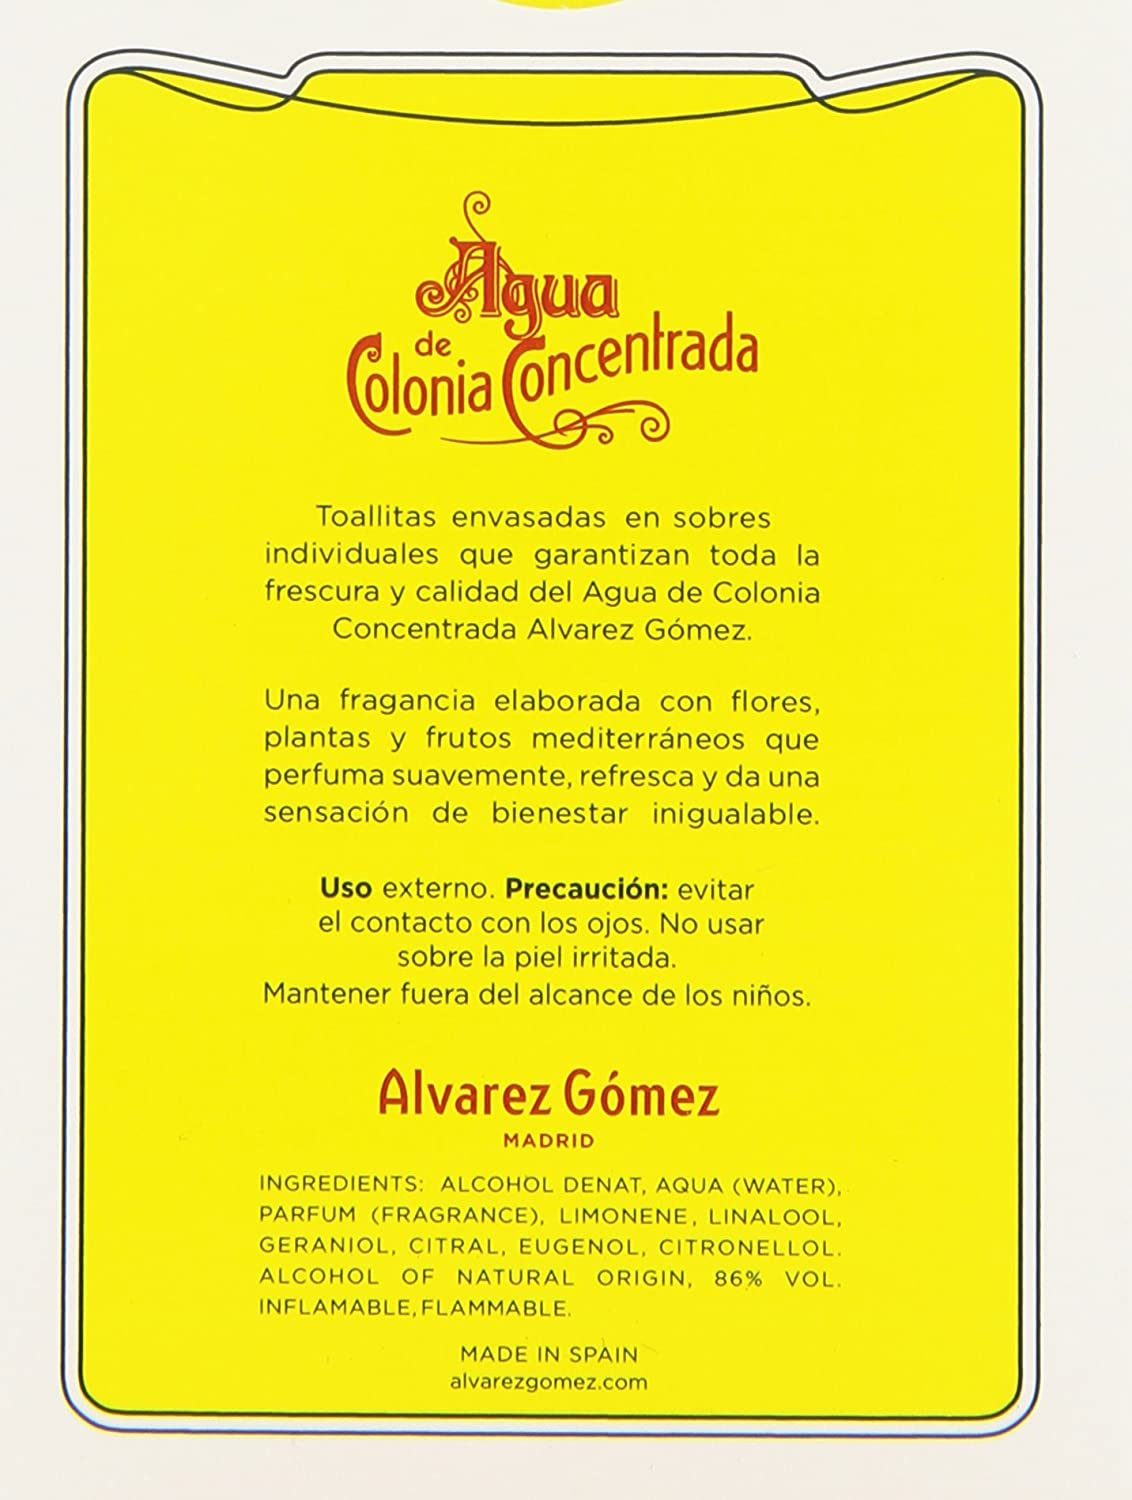 Amazon.com : Alvarez Gomez Agua De Colonia Concentrada for Men Perfumed Towelettes, 1.0 Ounce : Beauty